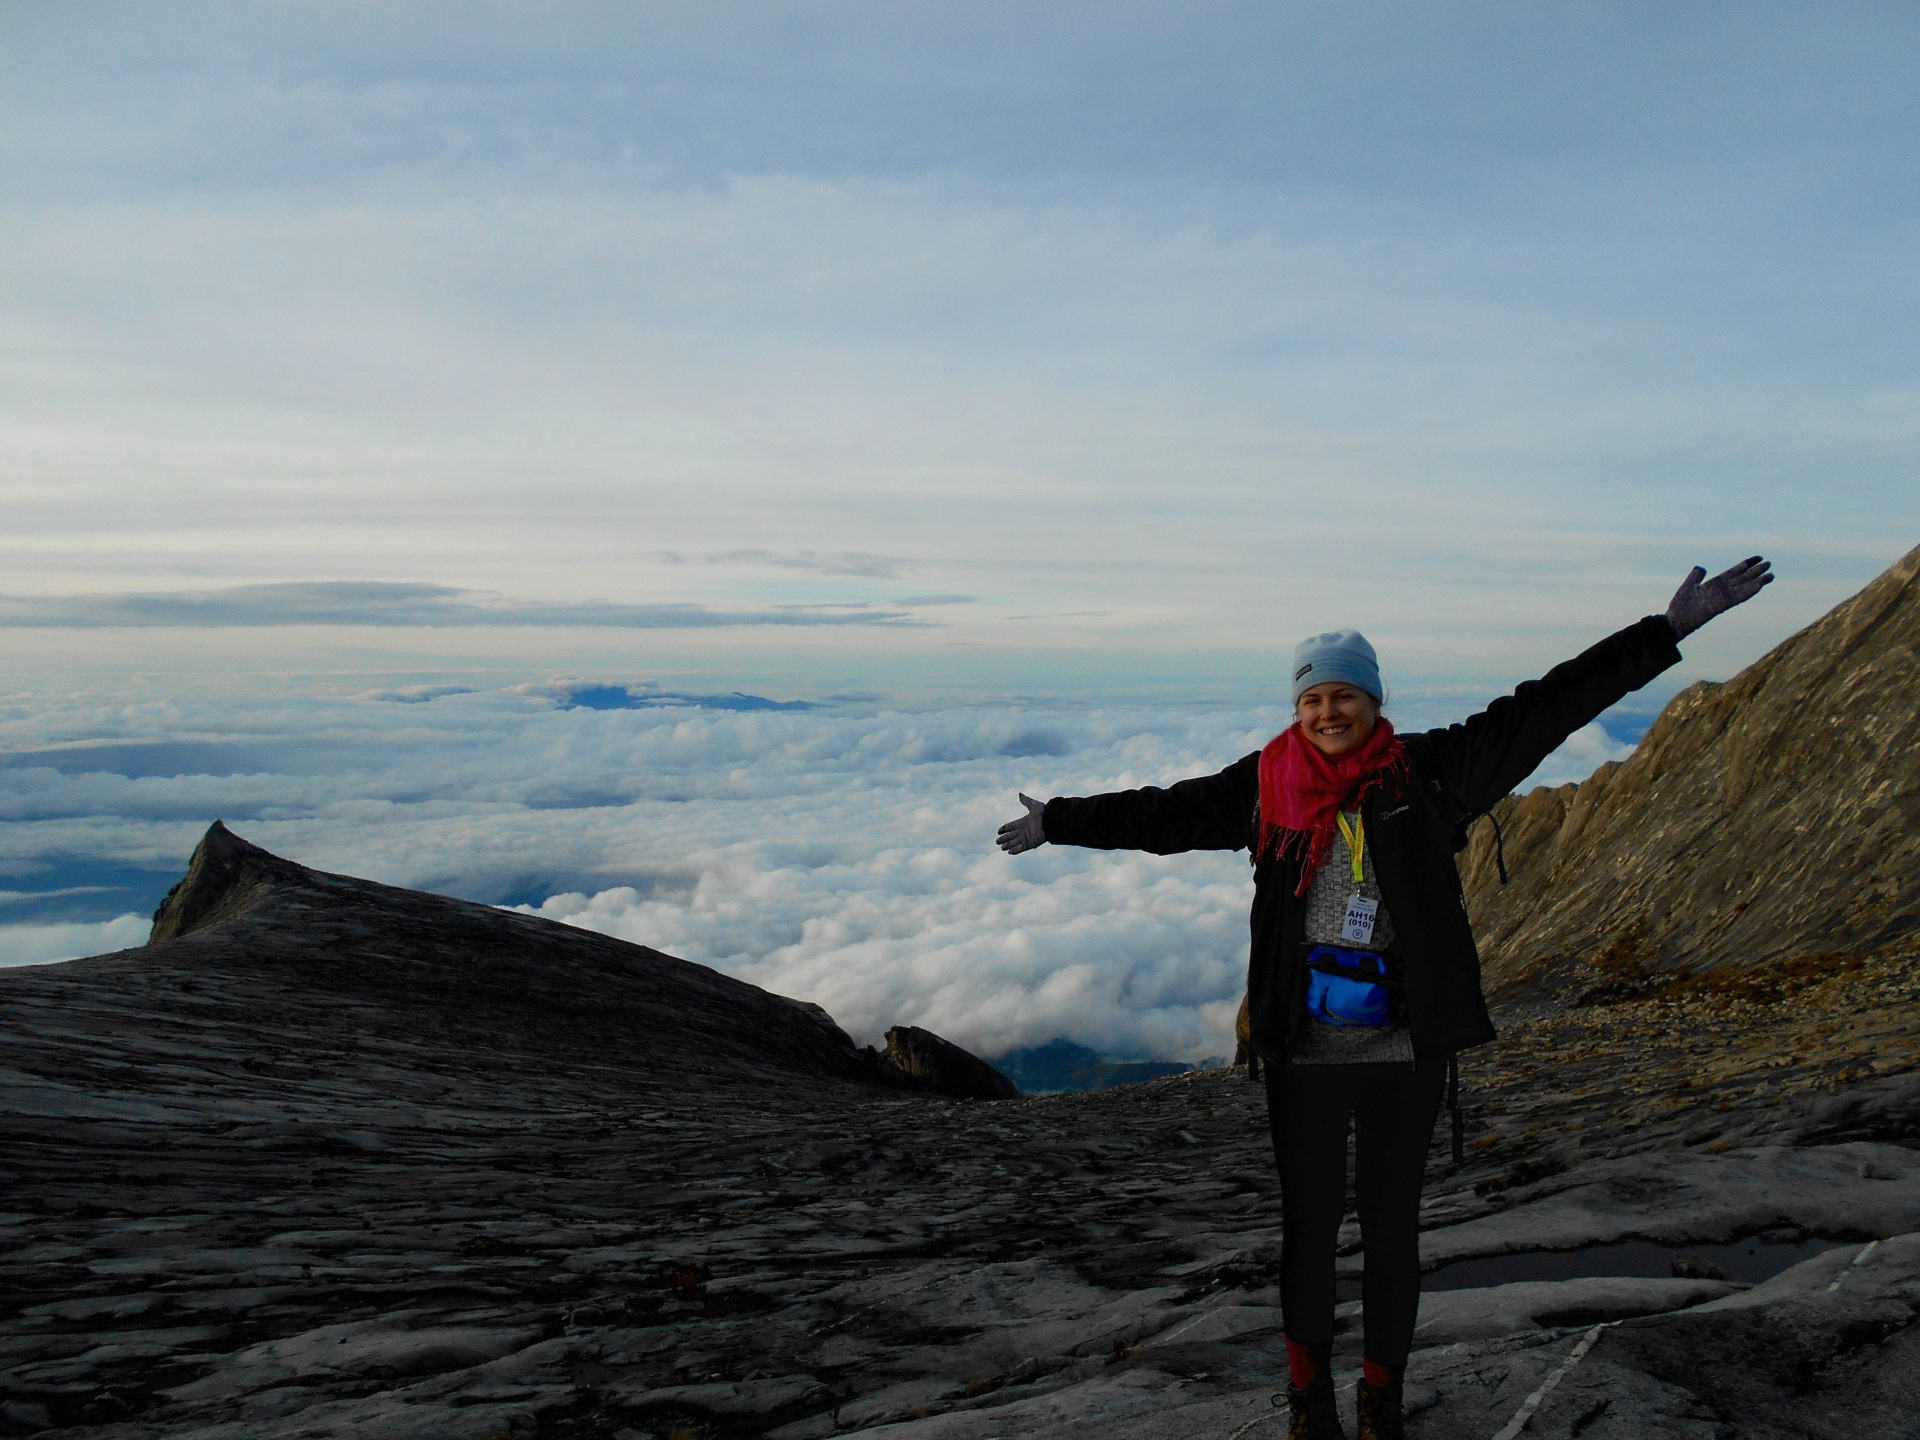 Standing at km 8 on Mount Kinabalu - nearly at the top